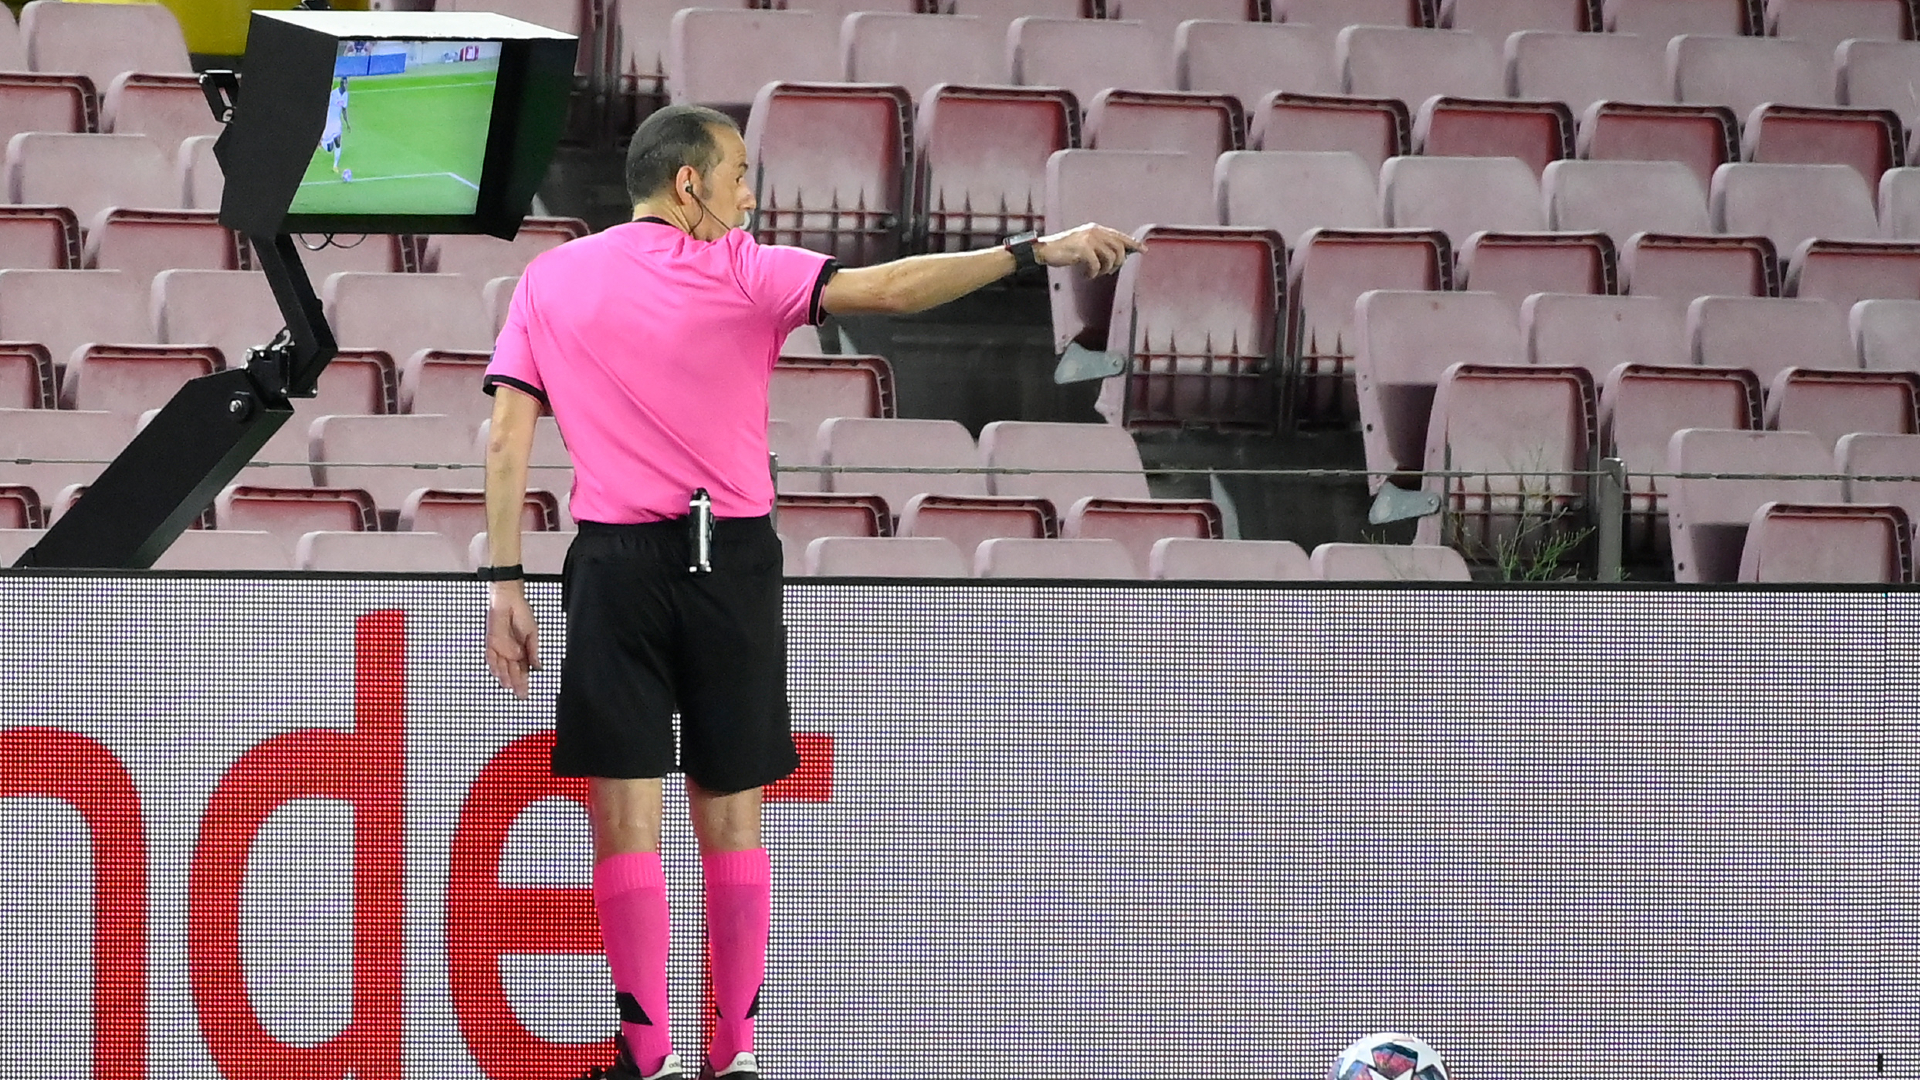 Referees' calls cause storm in Barca-Napoli: 'VAR is a disgrace!'